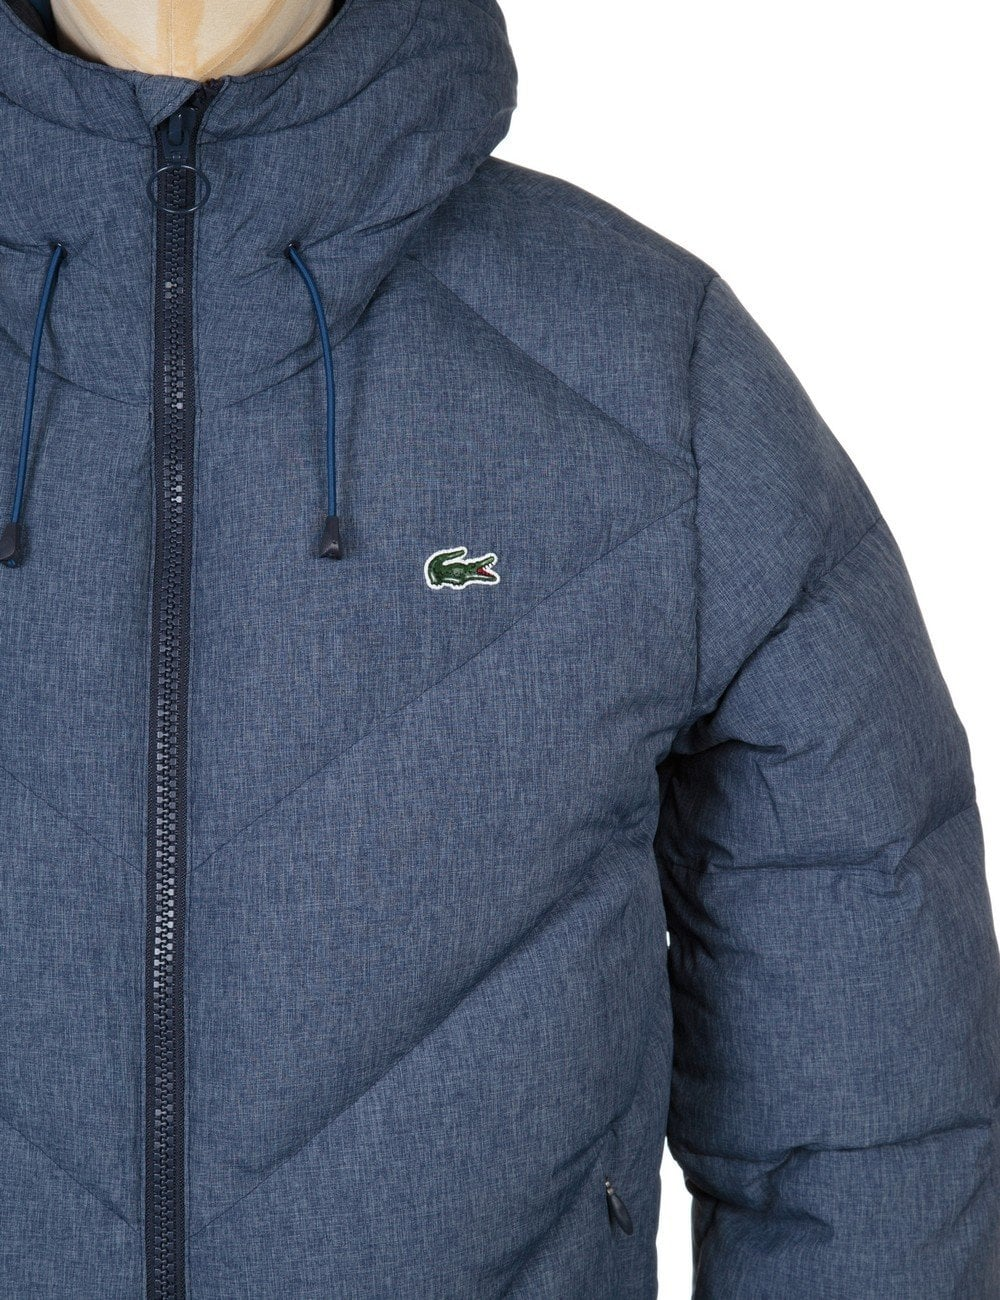 lacoste live down padded jacket midnight blue lacoste live from fat buddha store uk. Black Bedroom Furniture Sets. Home Design Ideas